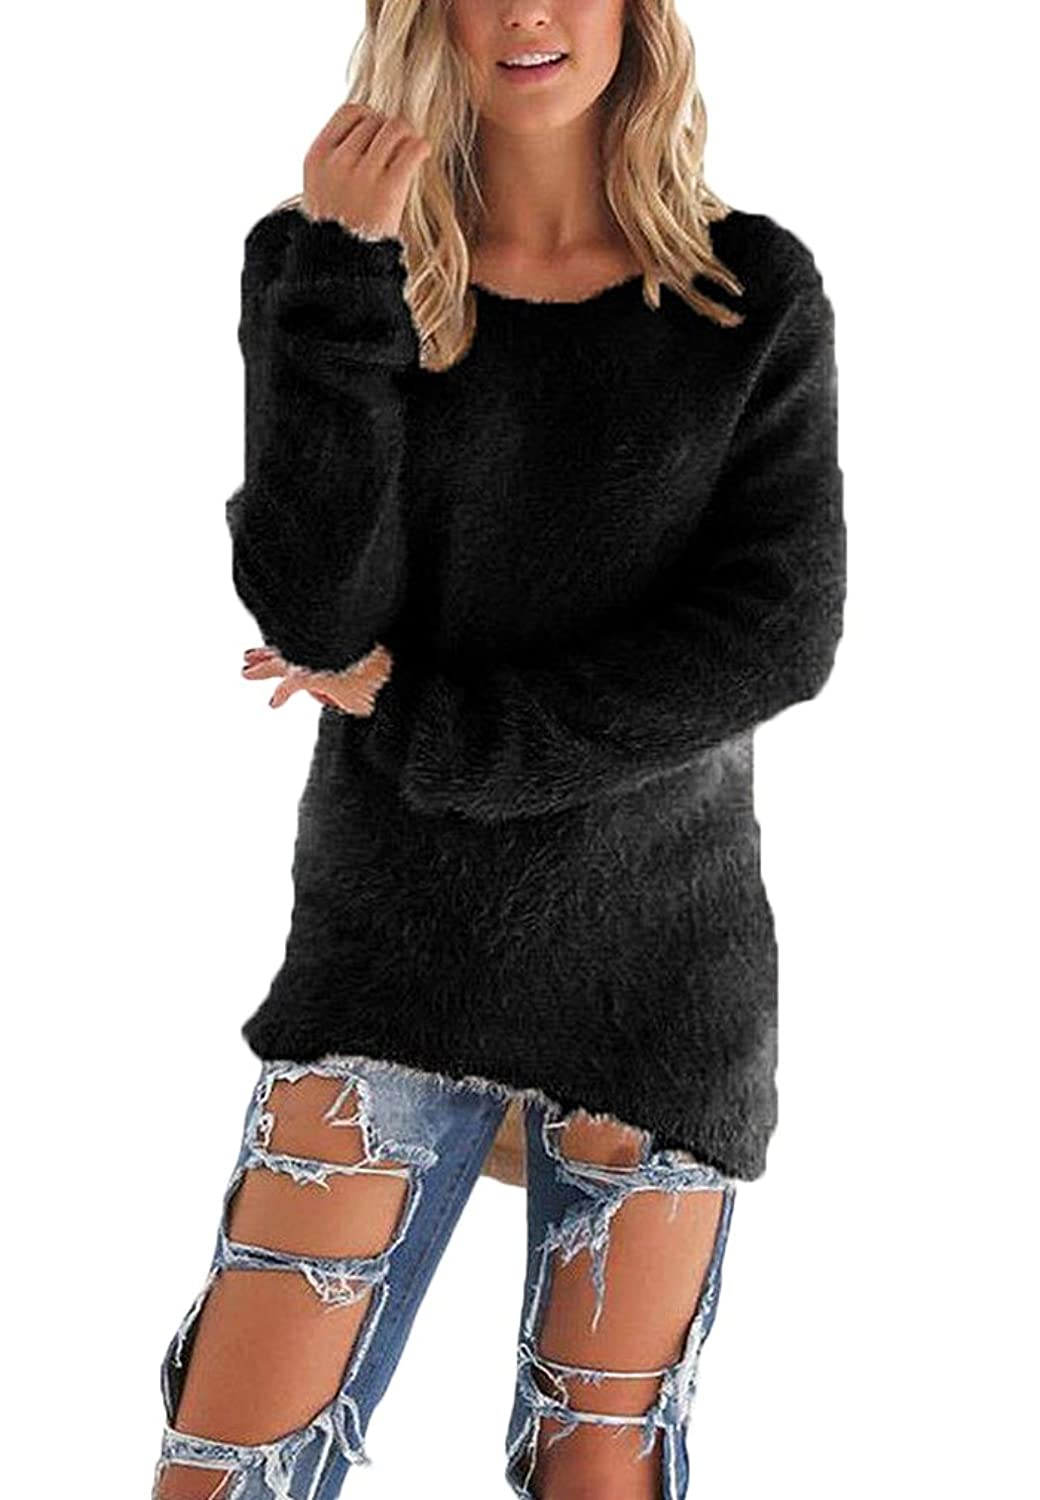 AIYUE® Pull Femme Chandails à Manches Longues Lâche Blouse Chaud Casual Col O Sweater Jumper Pullover Hauts Tops Tricots Automne hiver